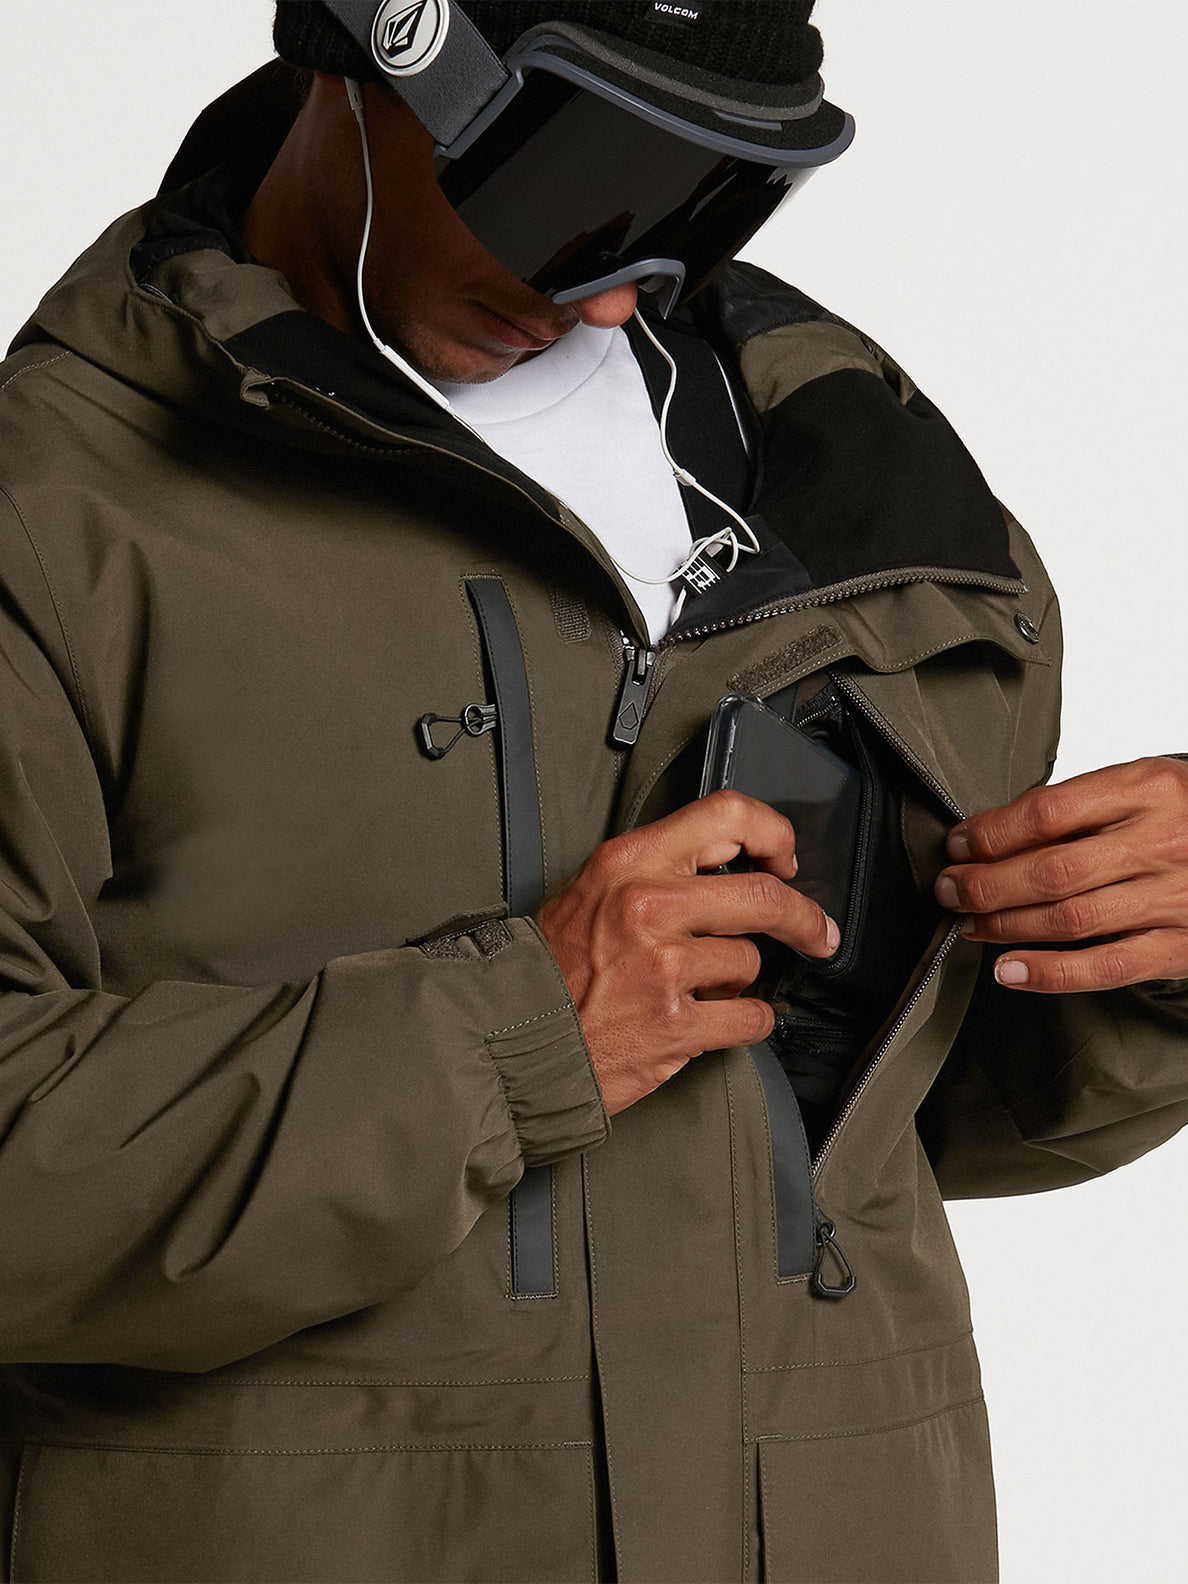 Ten Ins Gore-Tex Jacket Black Military (G0452113_BML) [07]